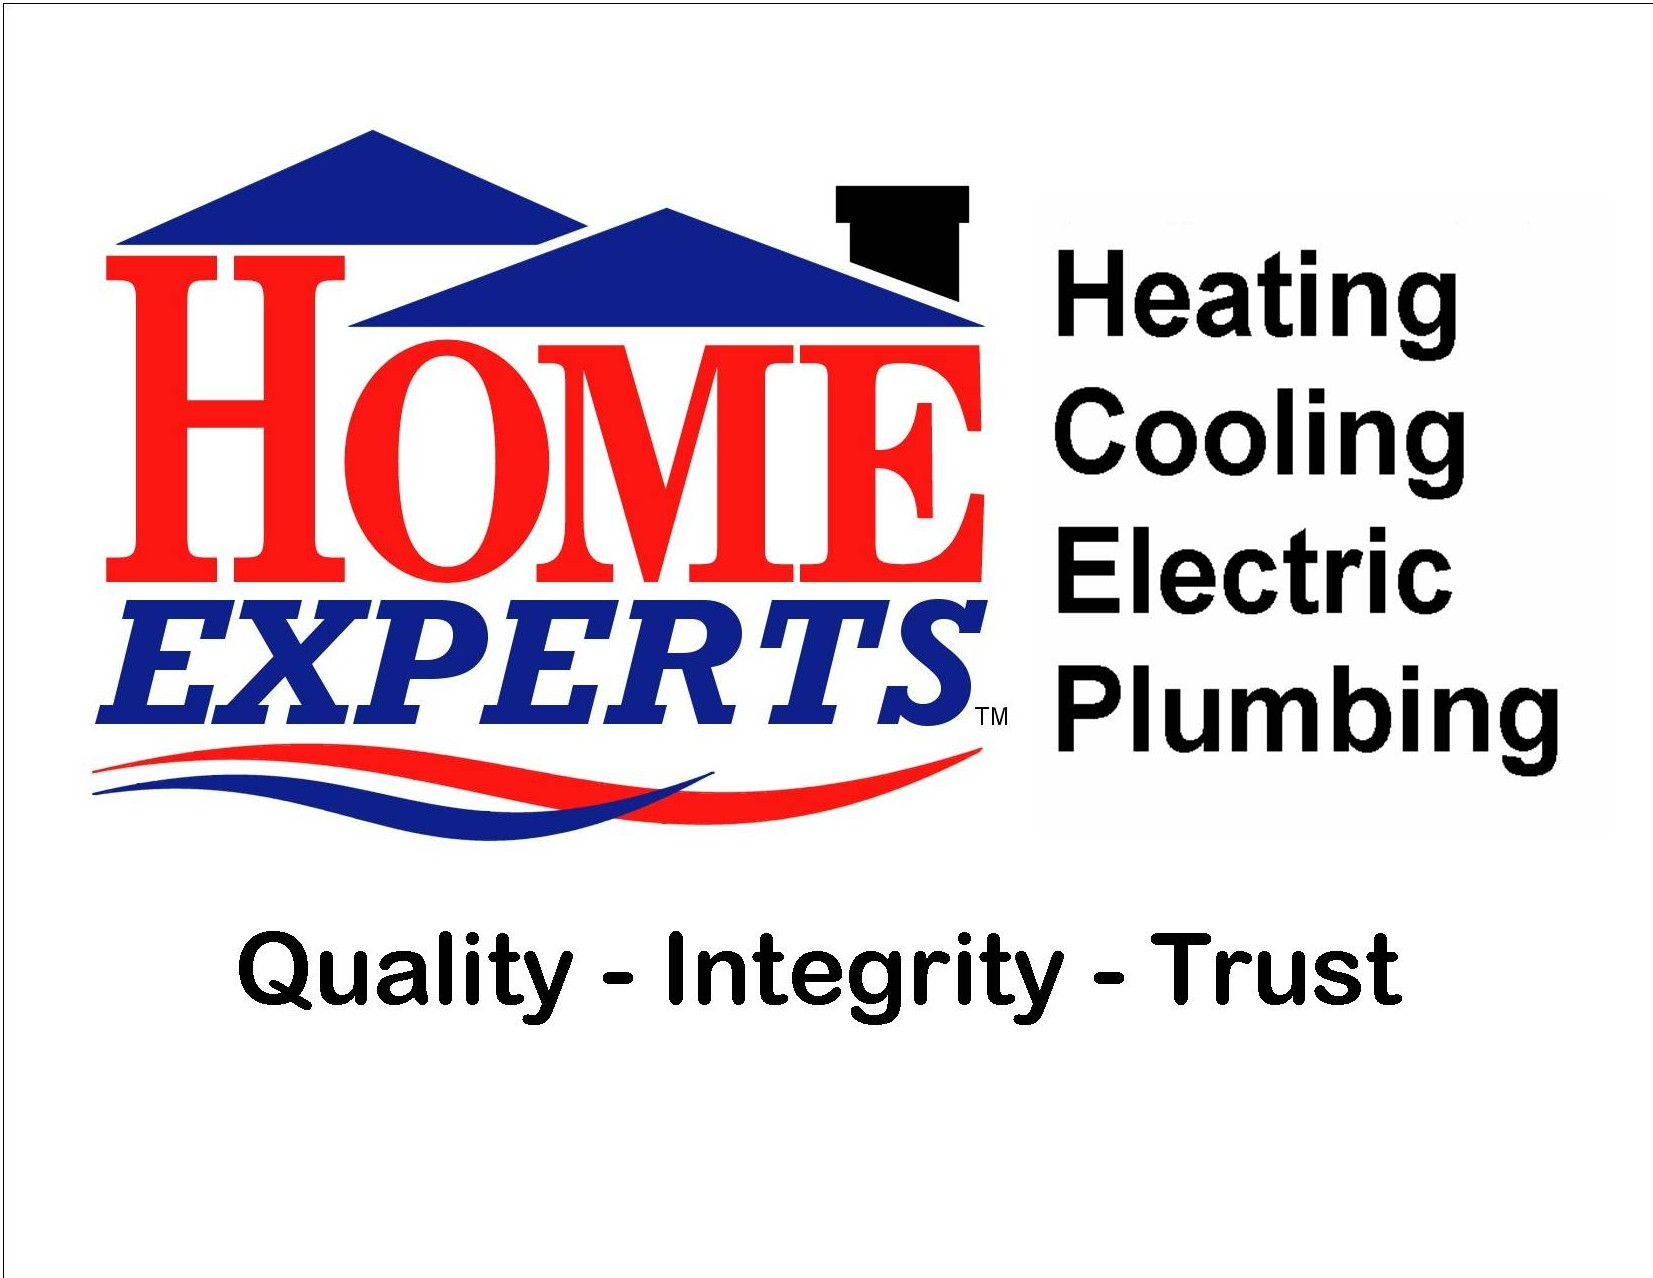 Call Home Experts Heating, Cooling & Plumbing for reliable AC repair in Ionia MI